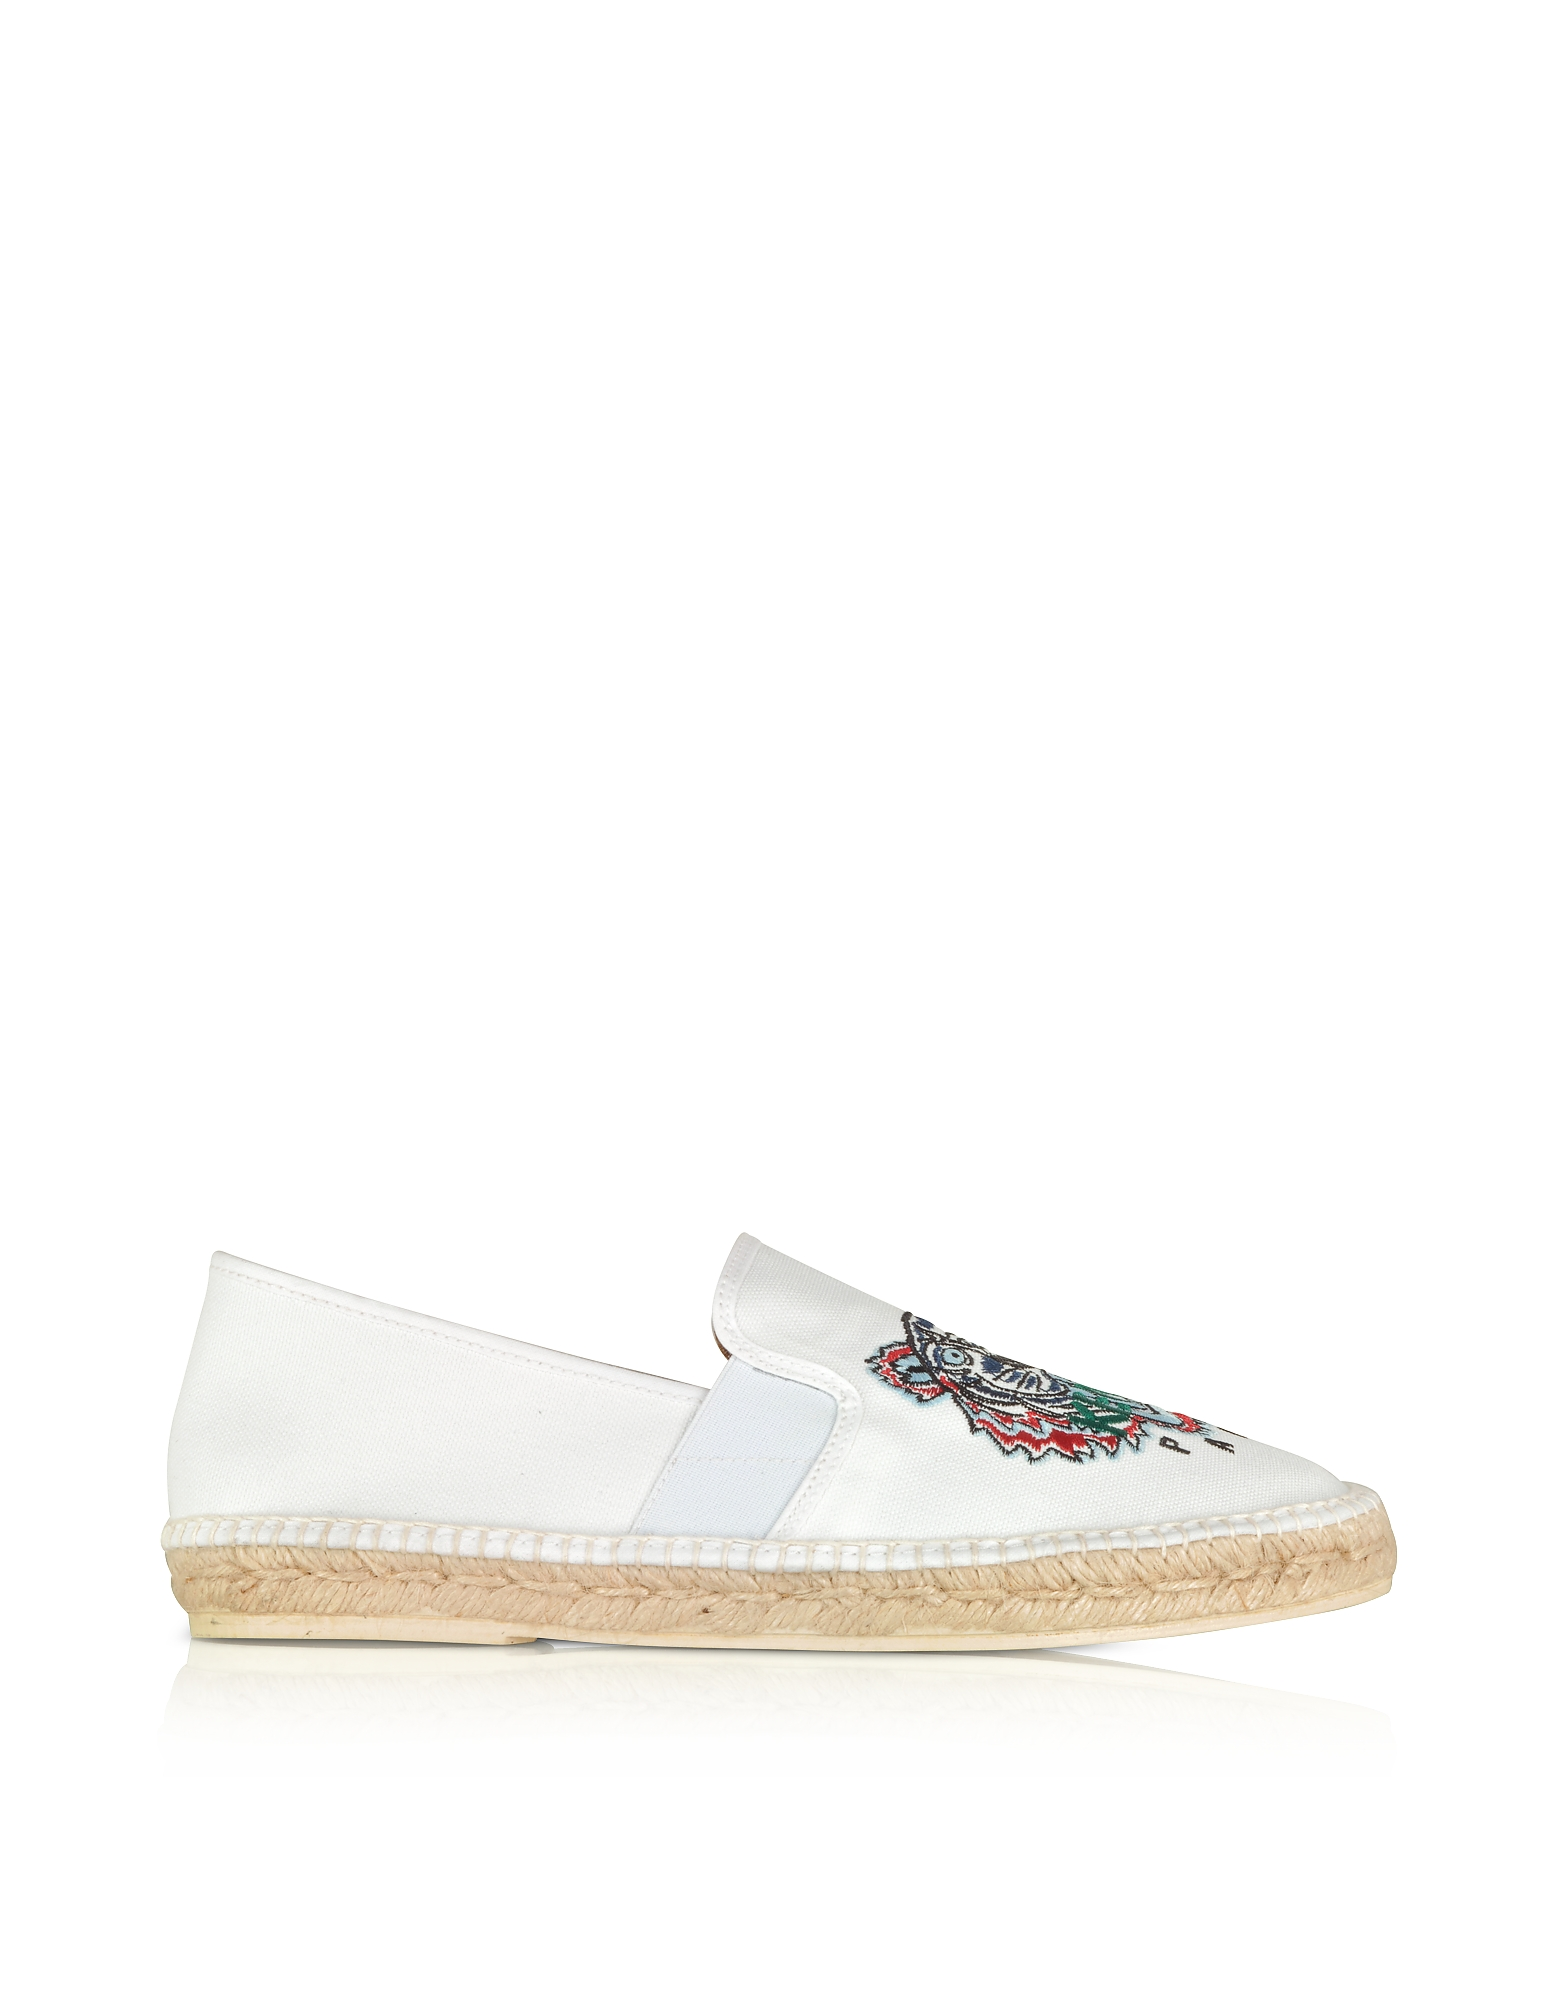 Kenzo Shoes, Optic White Tiger Men's Espadrillas